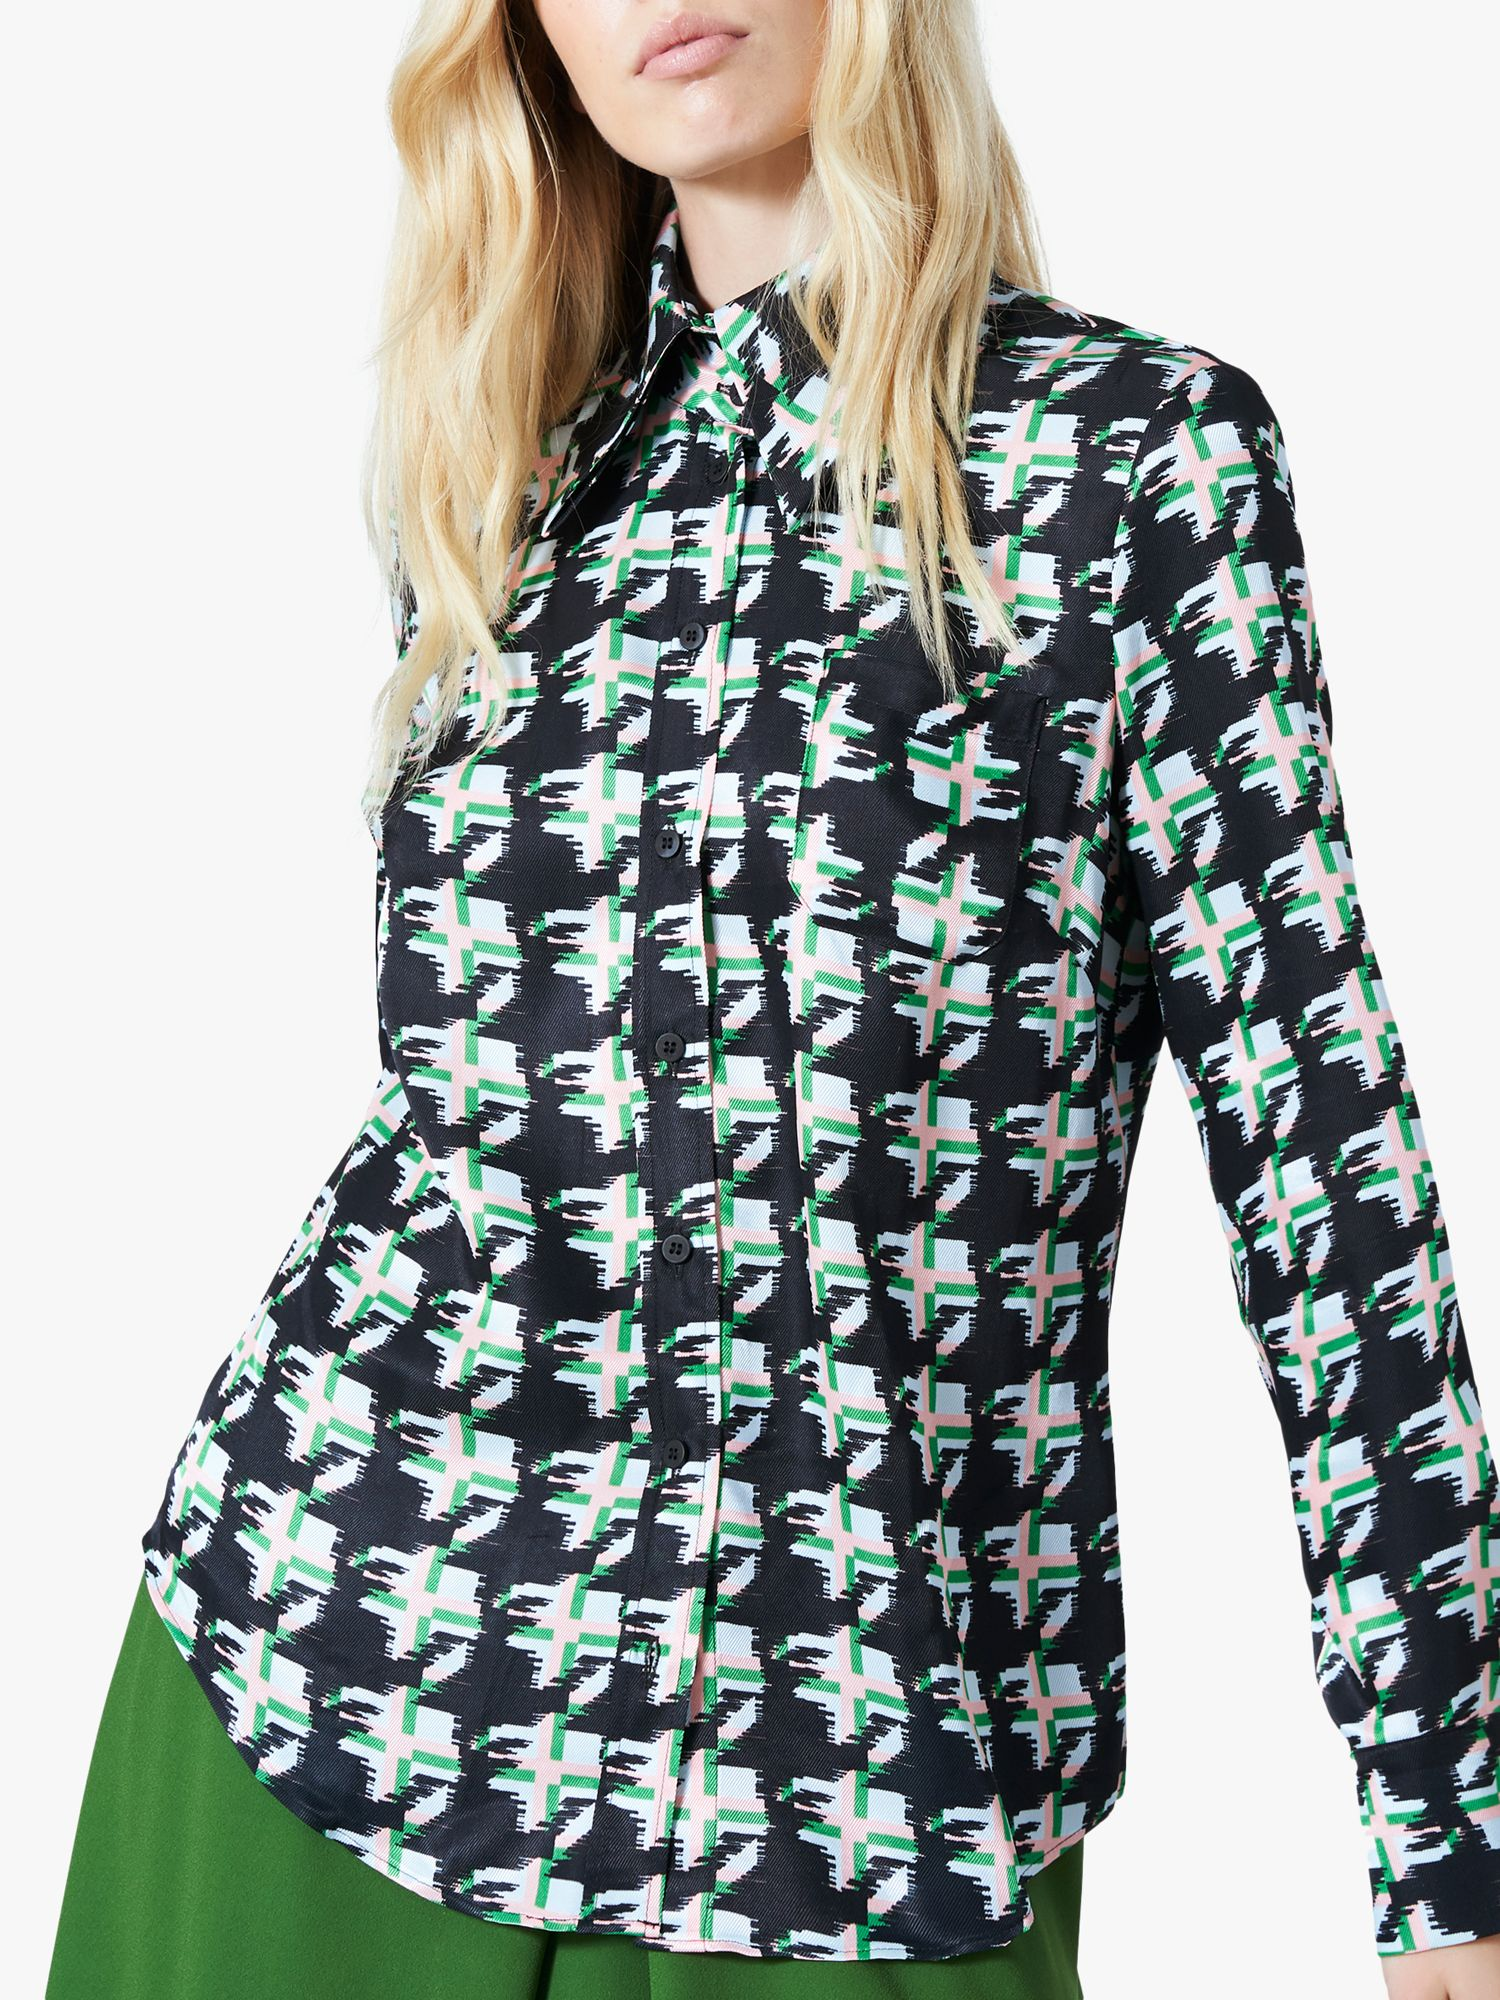 Finery Finery Ludlow Houndstooth Check Print Shirt, Green/Multi